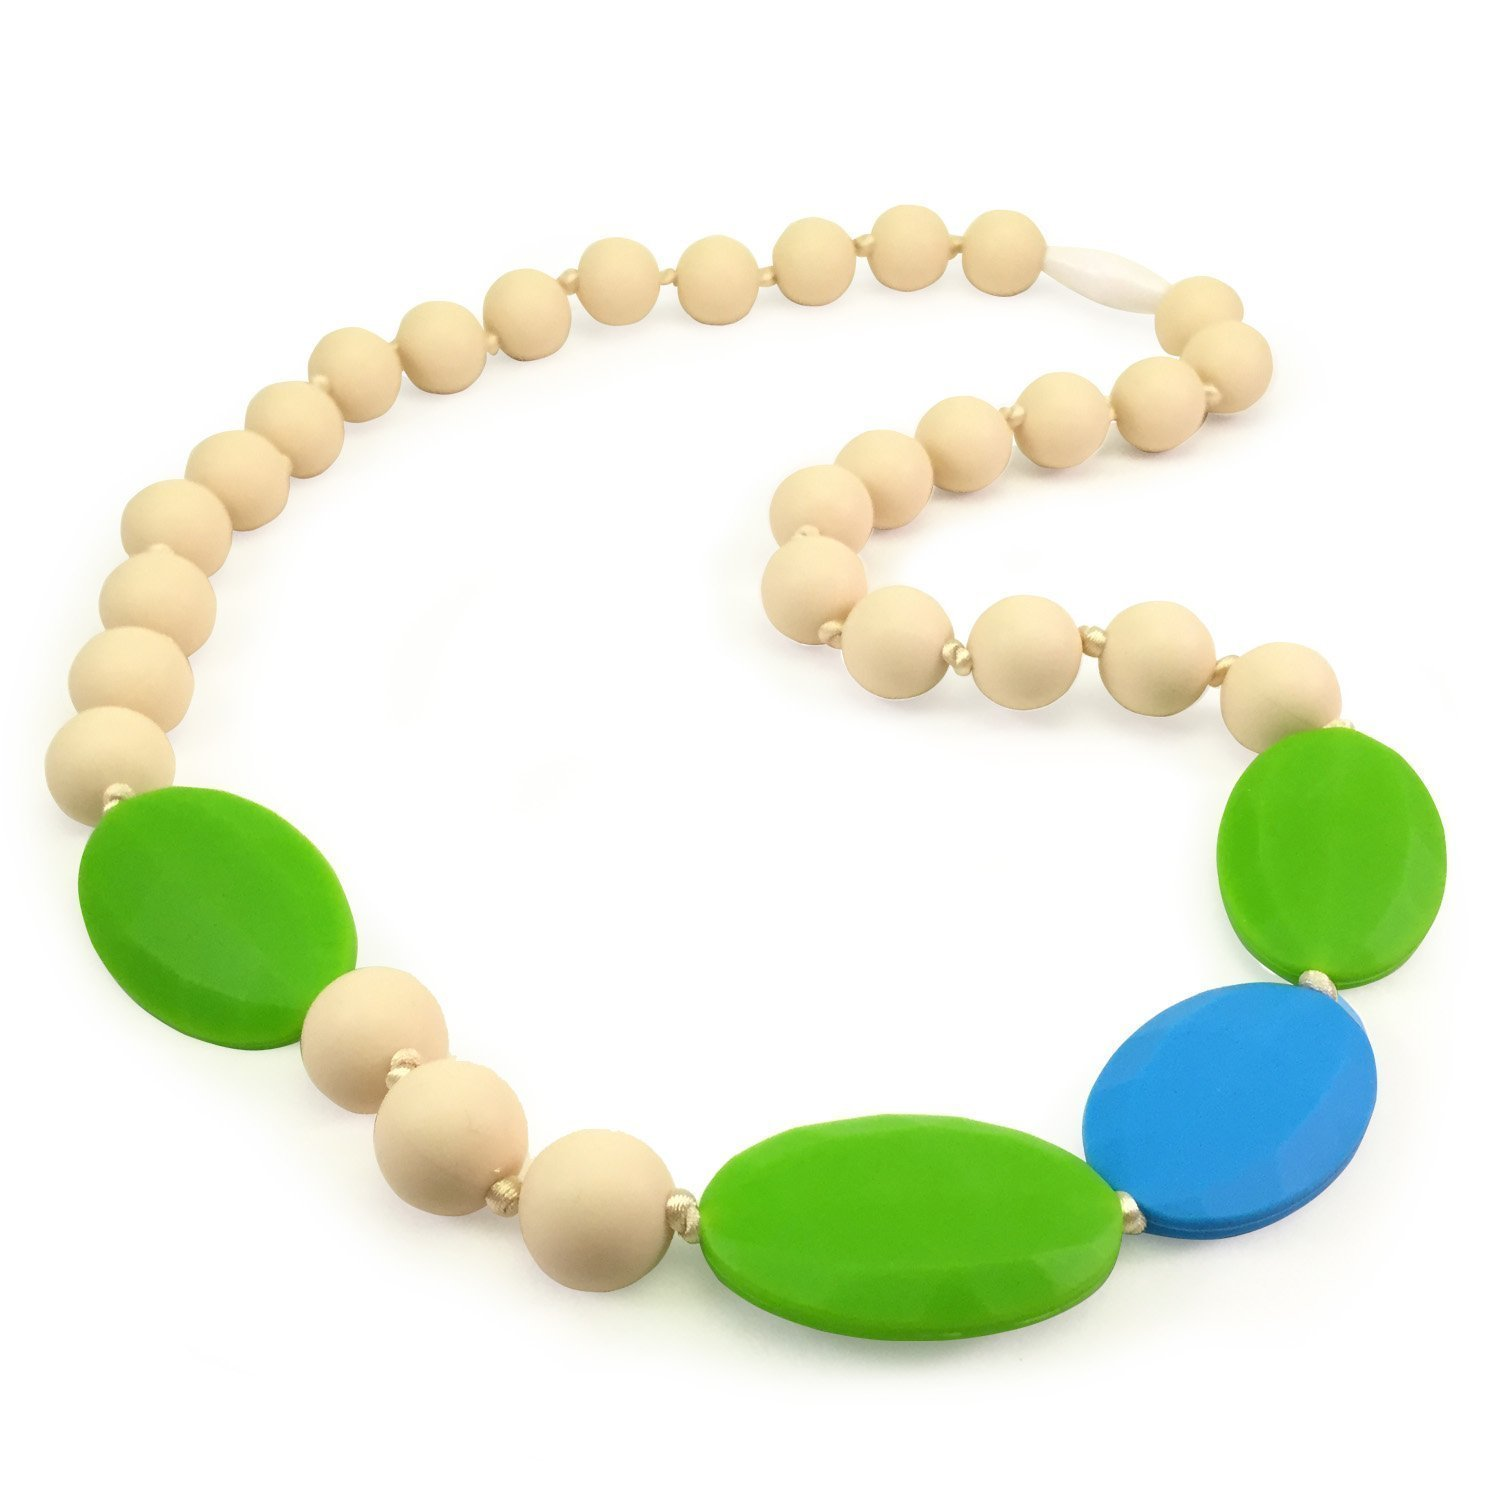 Teething Necklace for Mom to Wear - Baby Safe Silicone Teether 24 Inches Ivory by Epicura   B00SGGSHSW